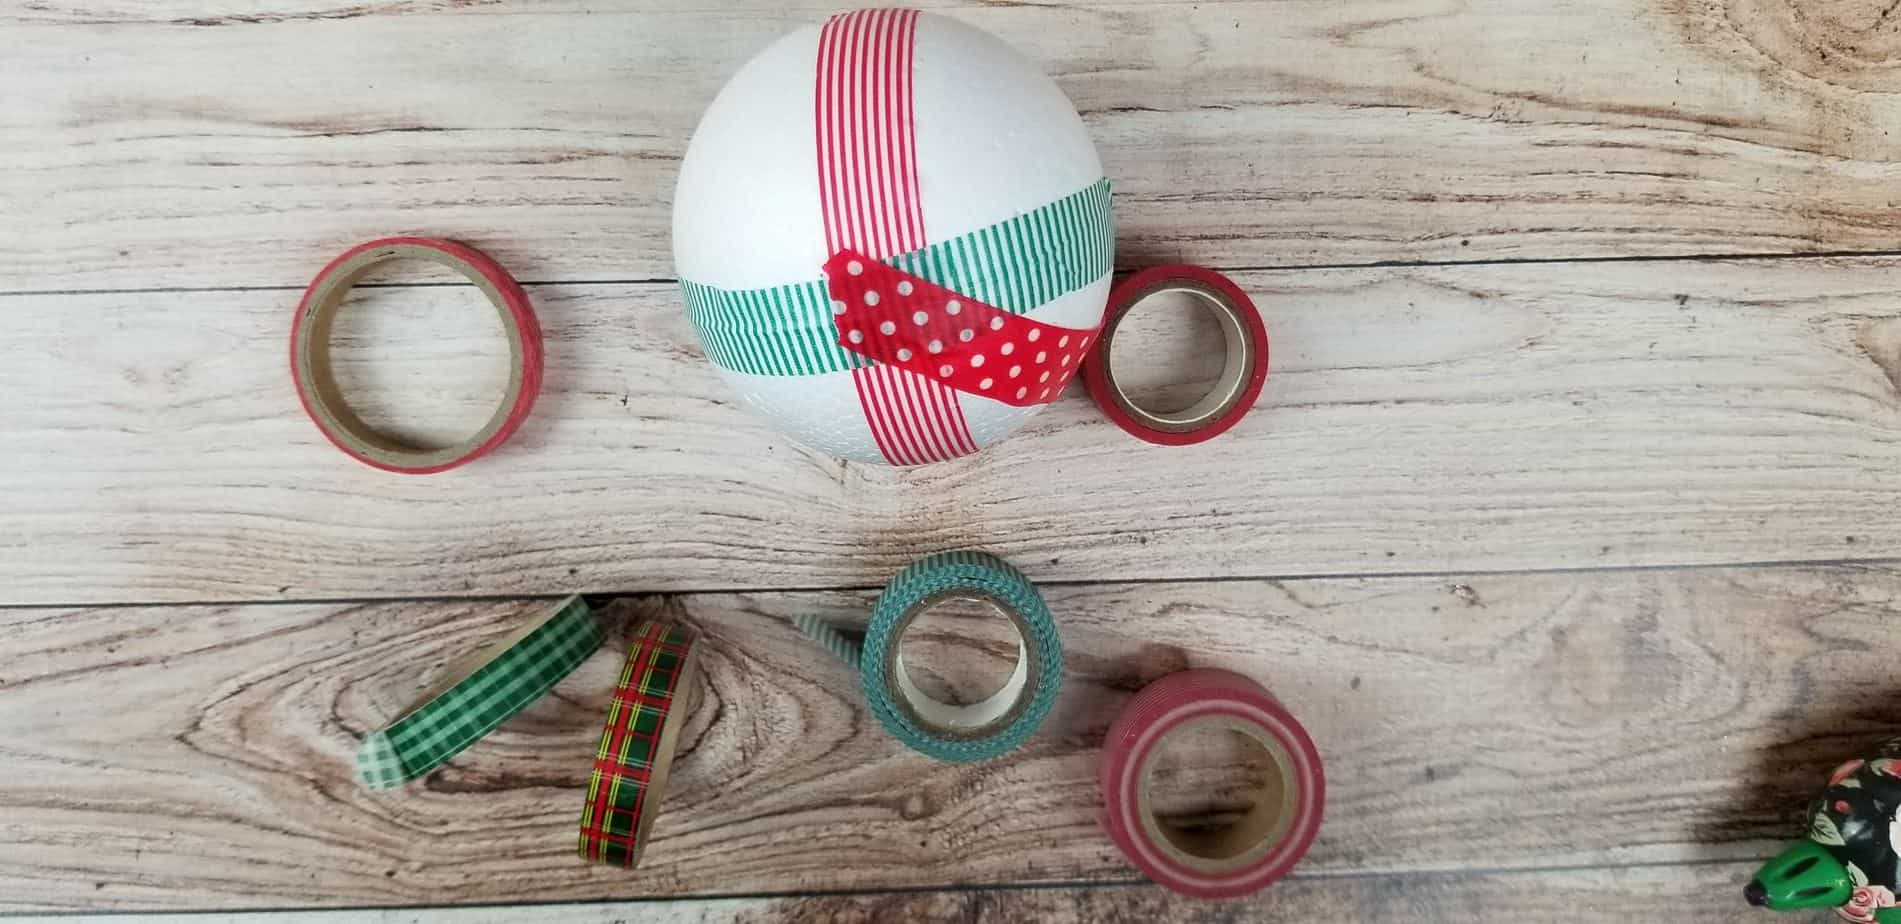 a styrofoam ball wrapped with some red and green washi tape with more washi tape rolls on the wooden table